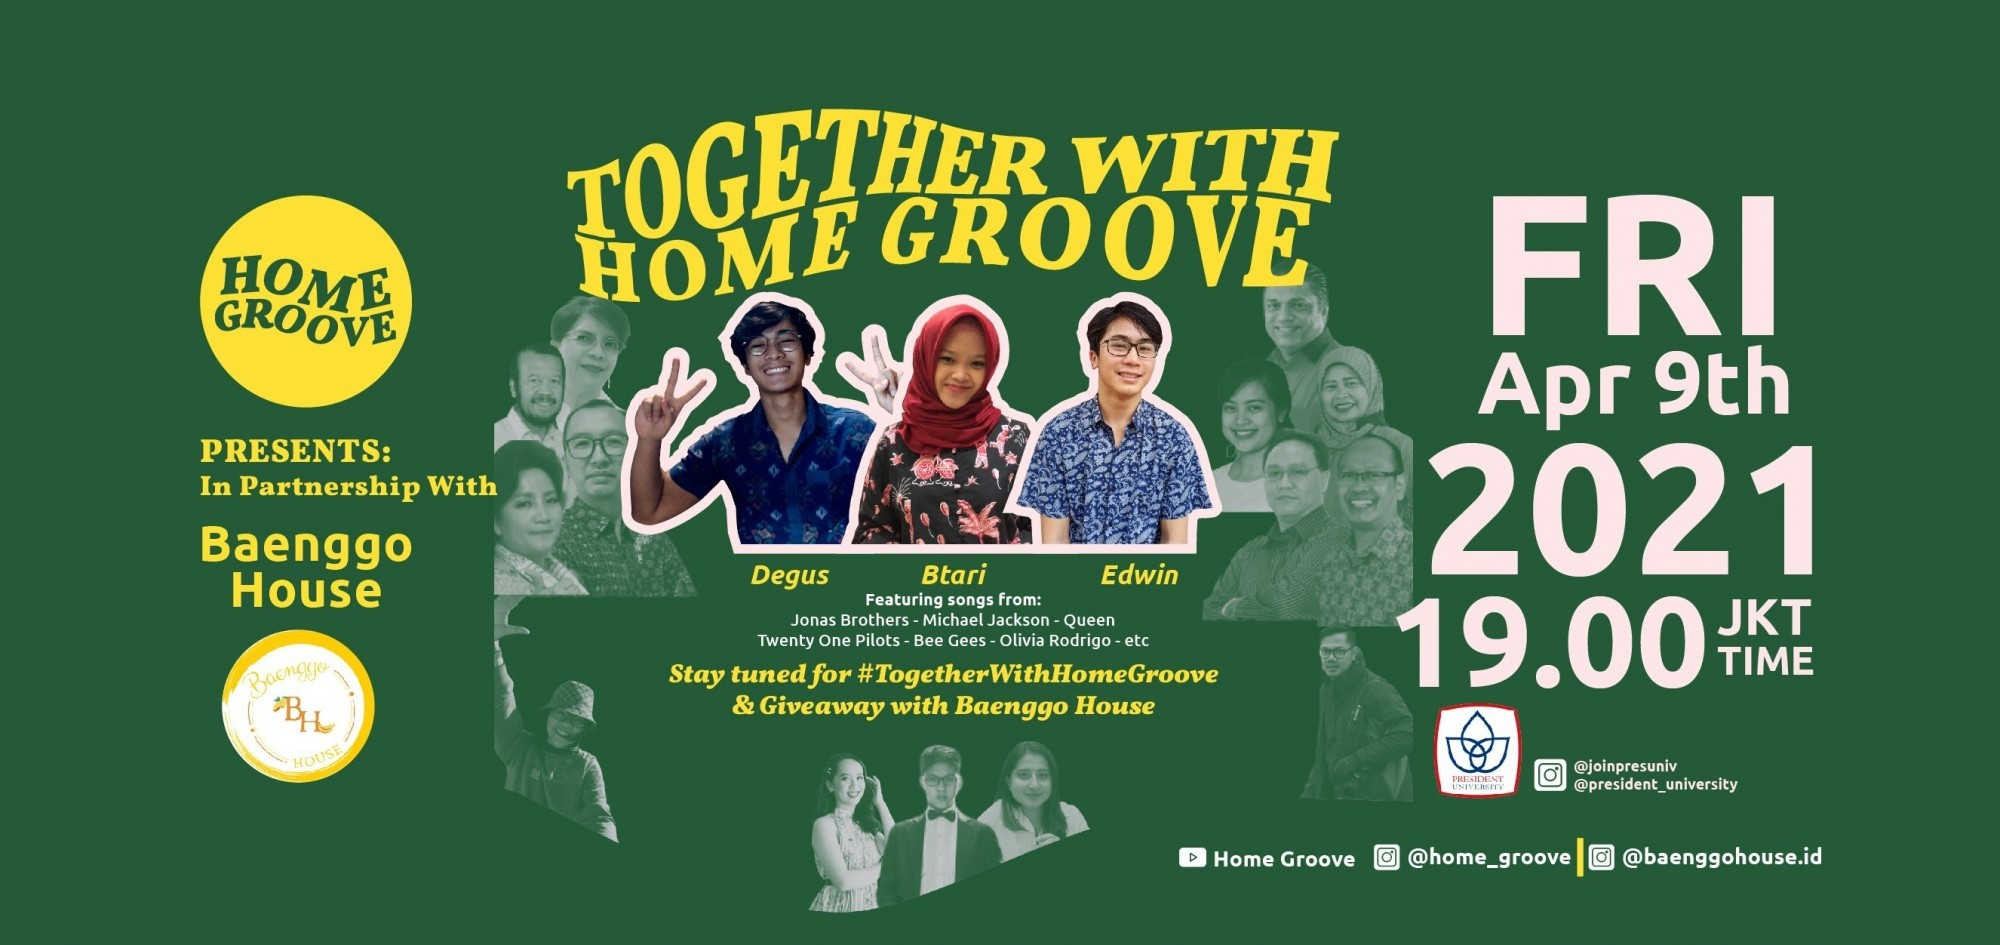 Together With Home Groove